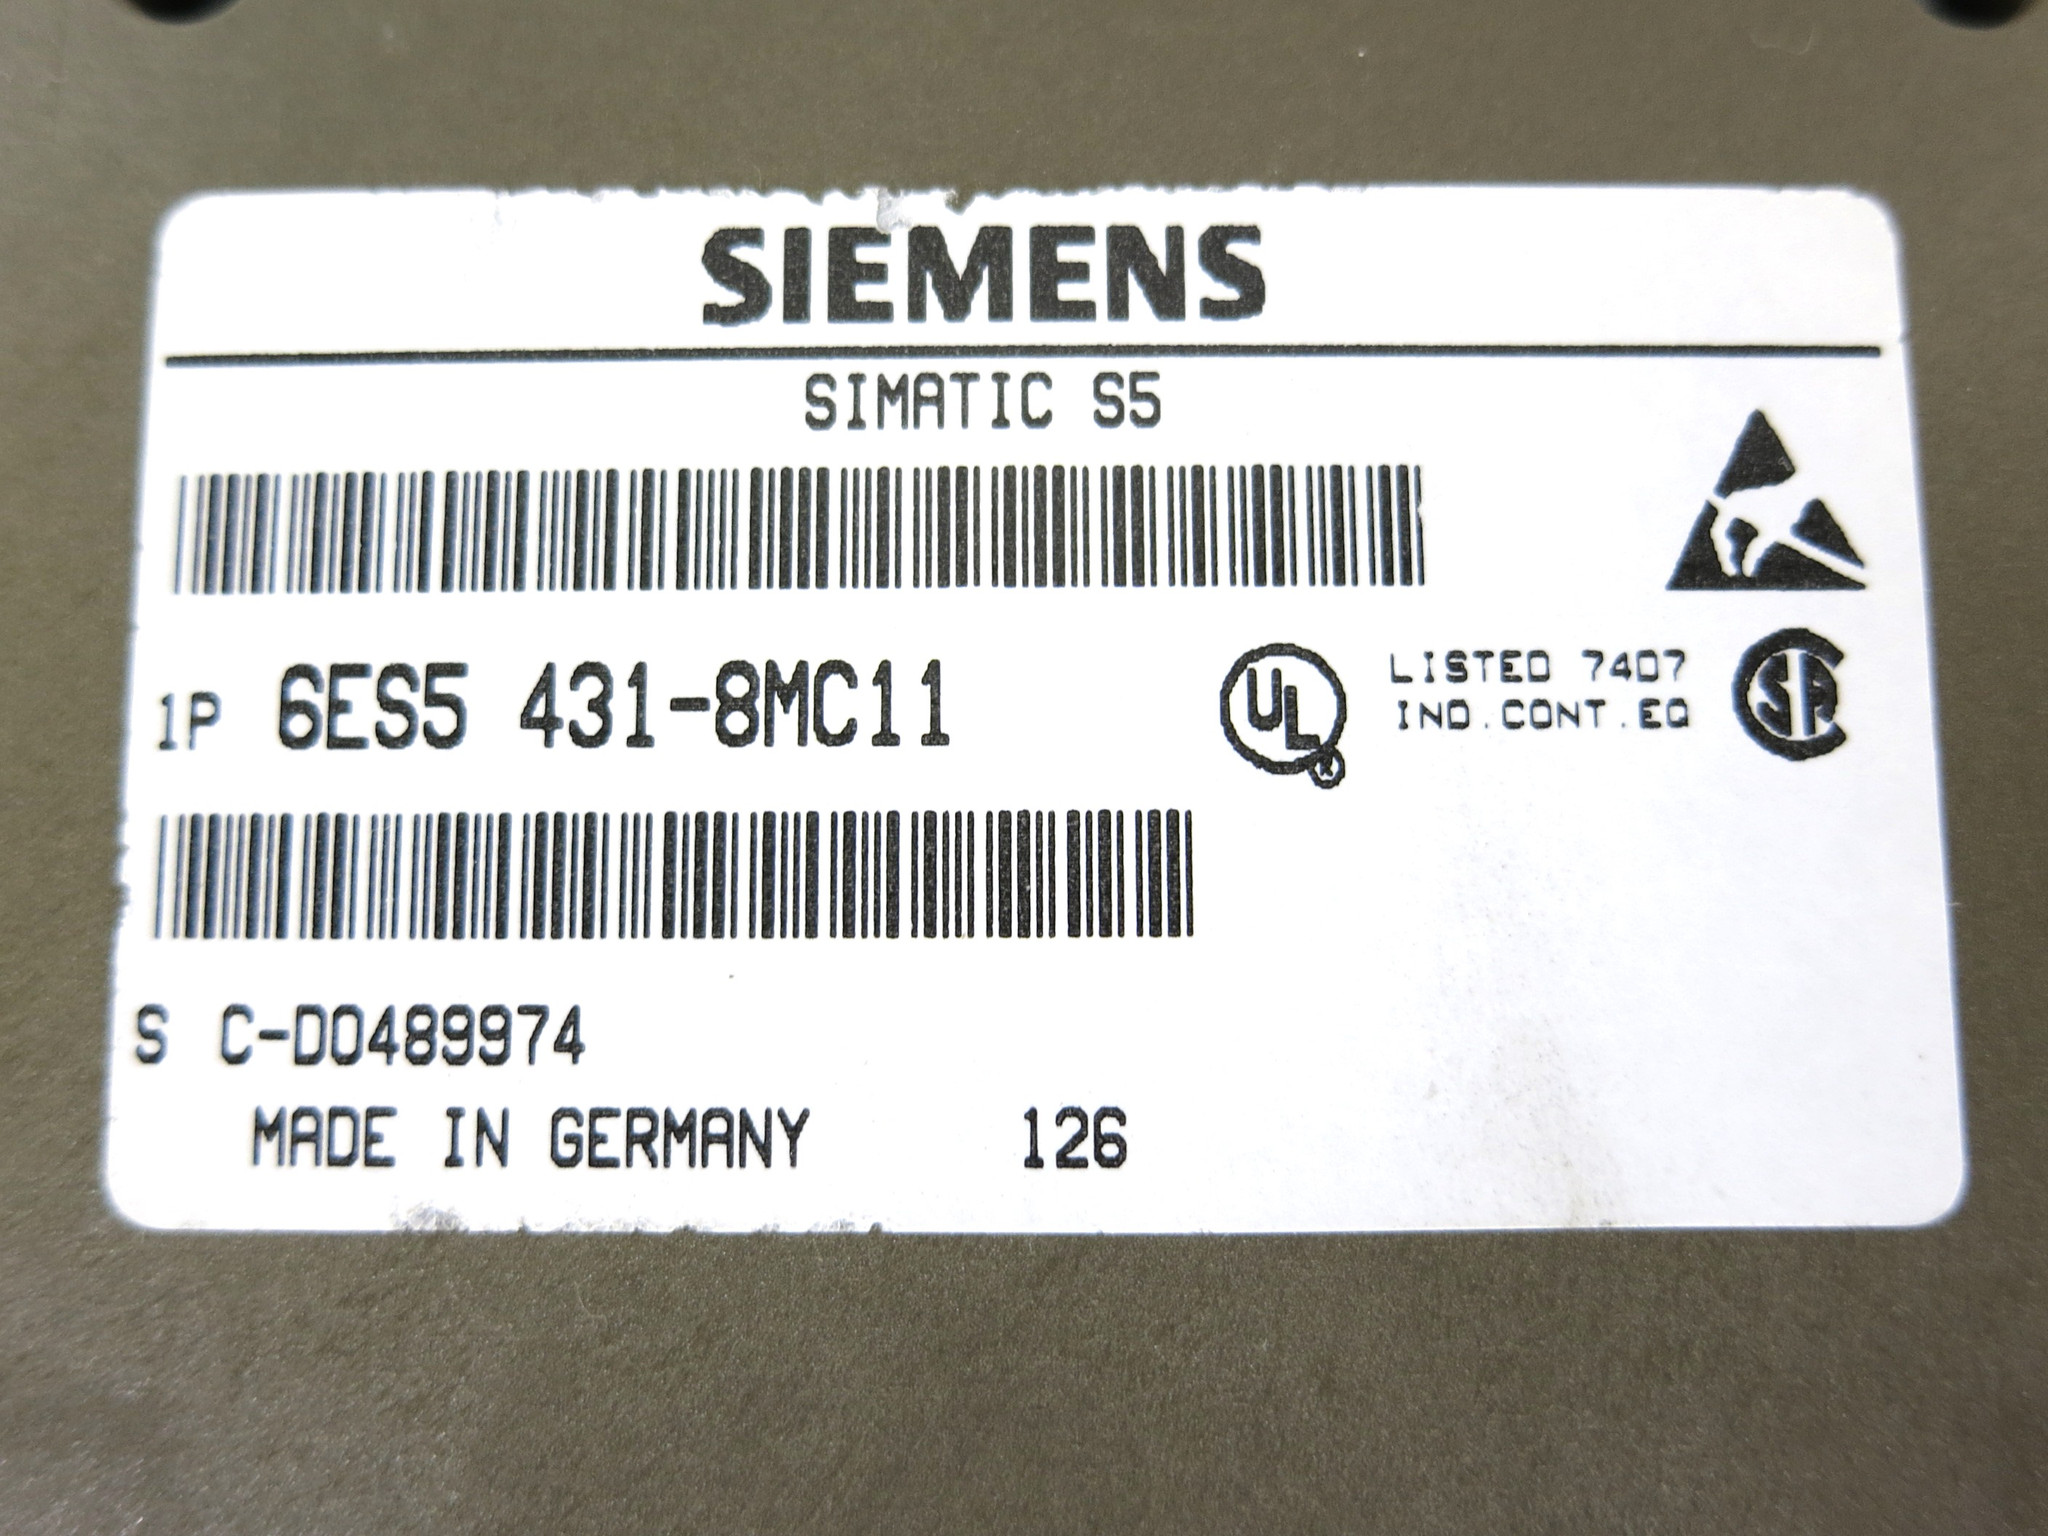 SIEMENS 6ES5 431-8MC11 DIGITAL INPUT MODULE